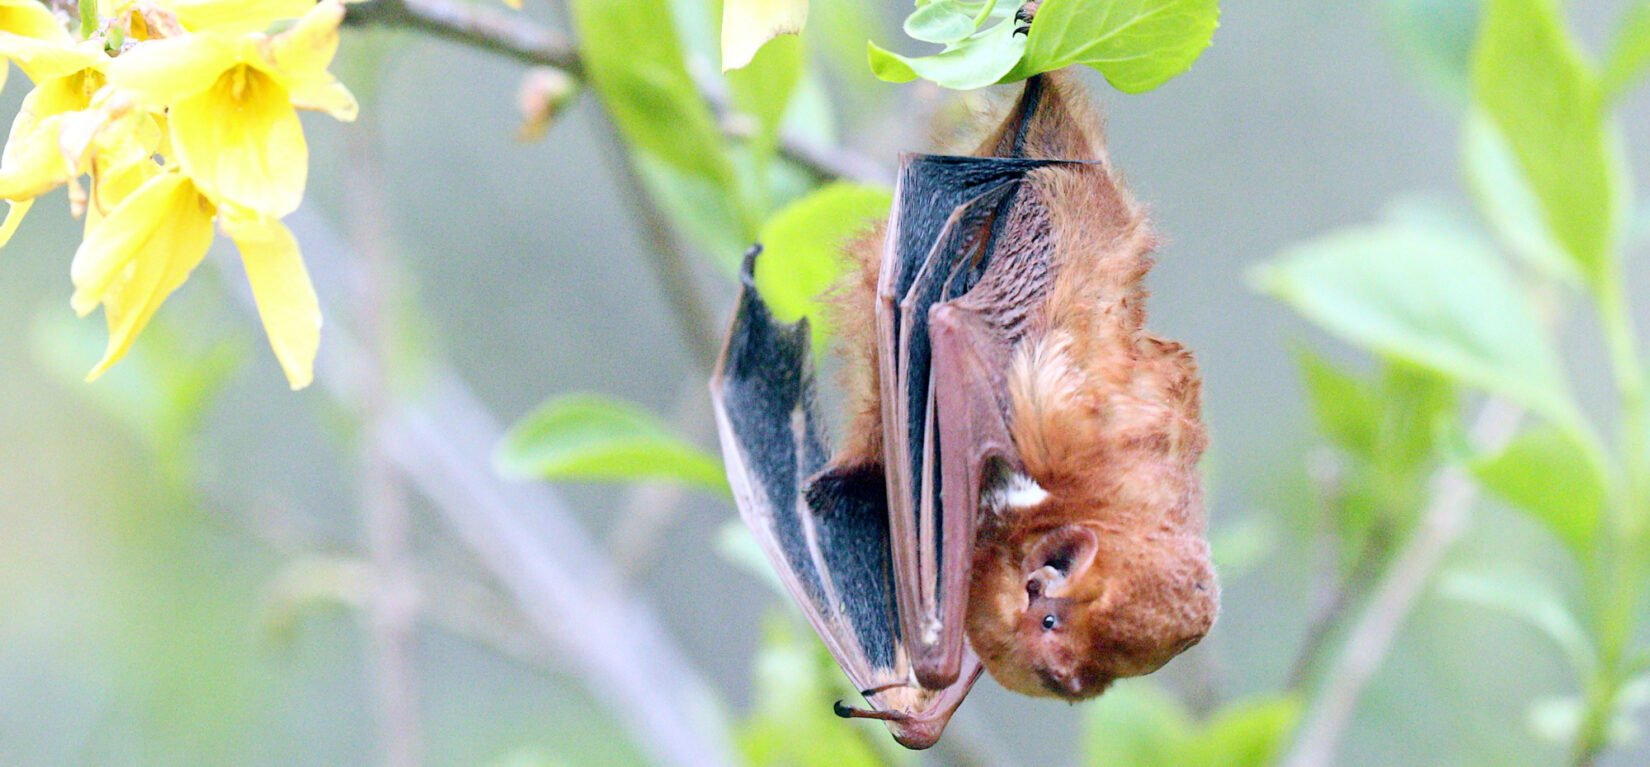 The bat is pictured hanging upside down from a leafy branch